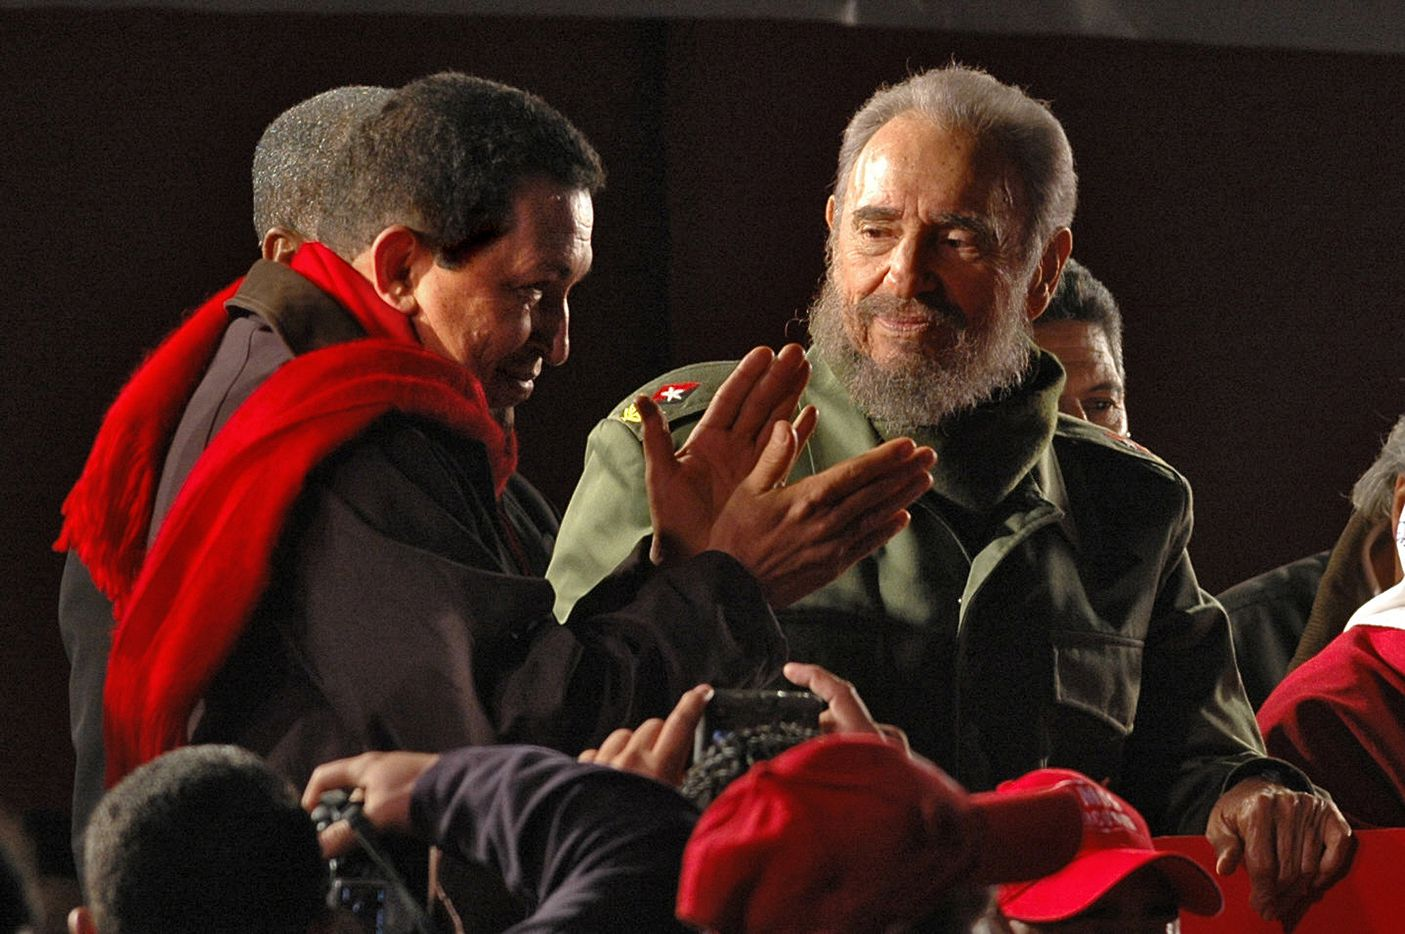 Cuban president Fidel Castro(R) observes his Venezuelan counterpart Hugo Chavez at the end of a rally in Cordoba, Argentina, July 21, 2006.